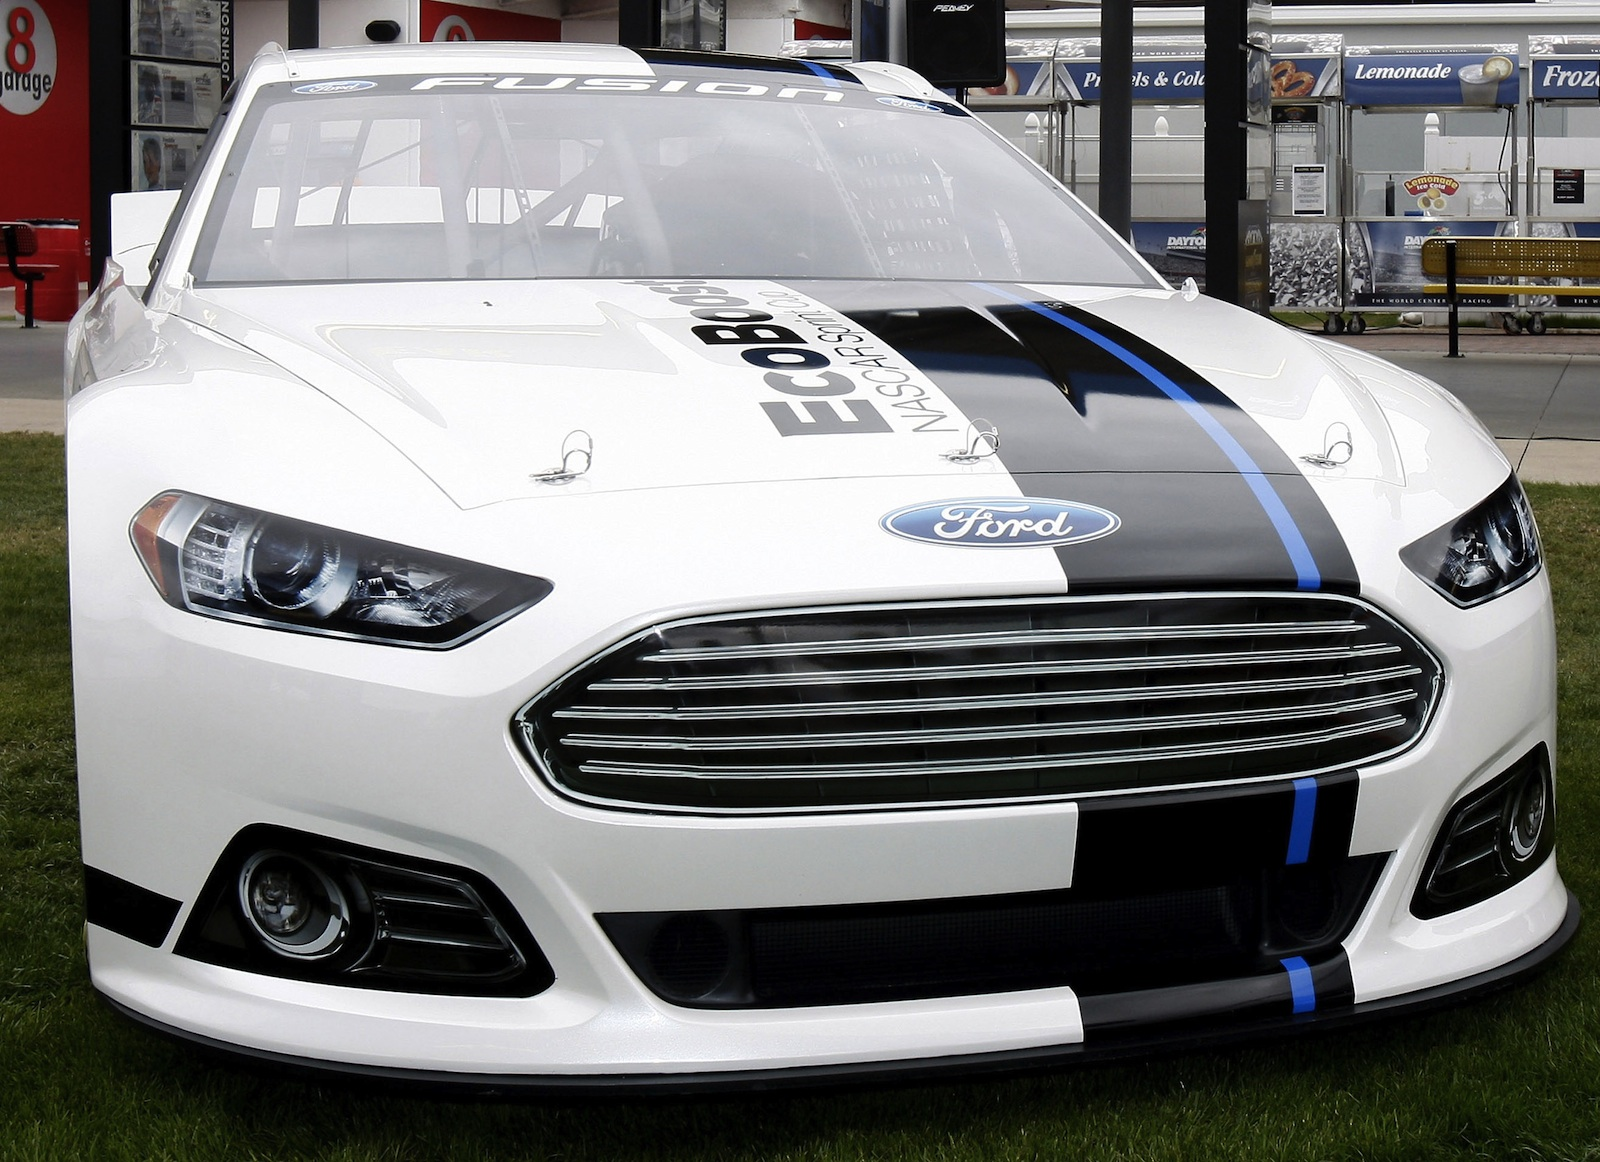 Ford Racing Shows Off New Global Motorsport Livery